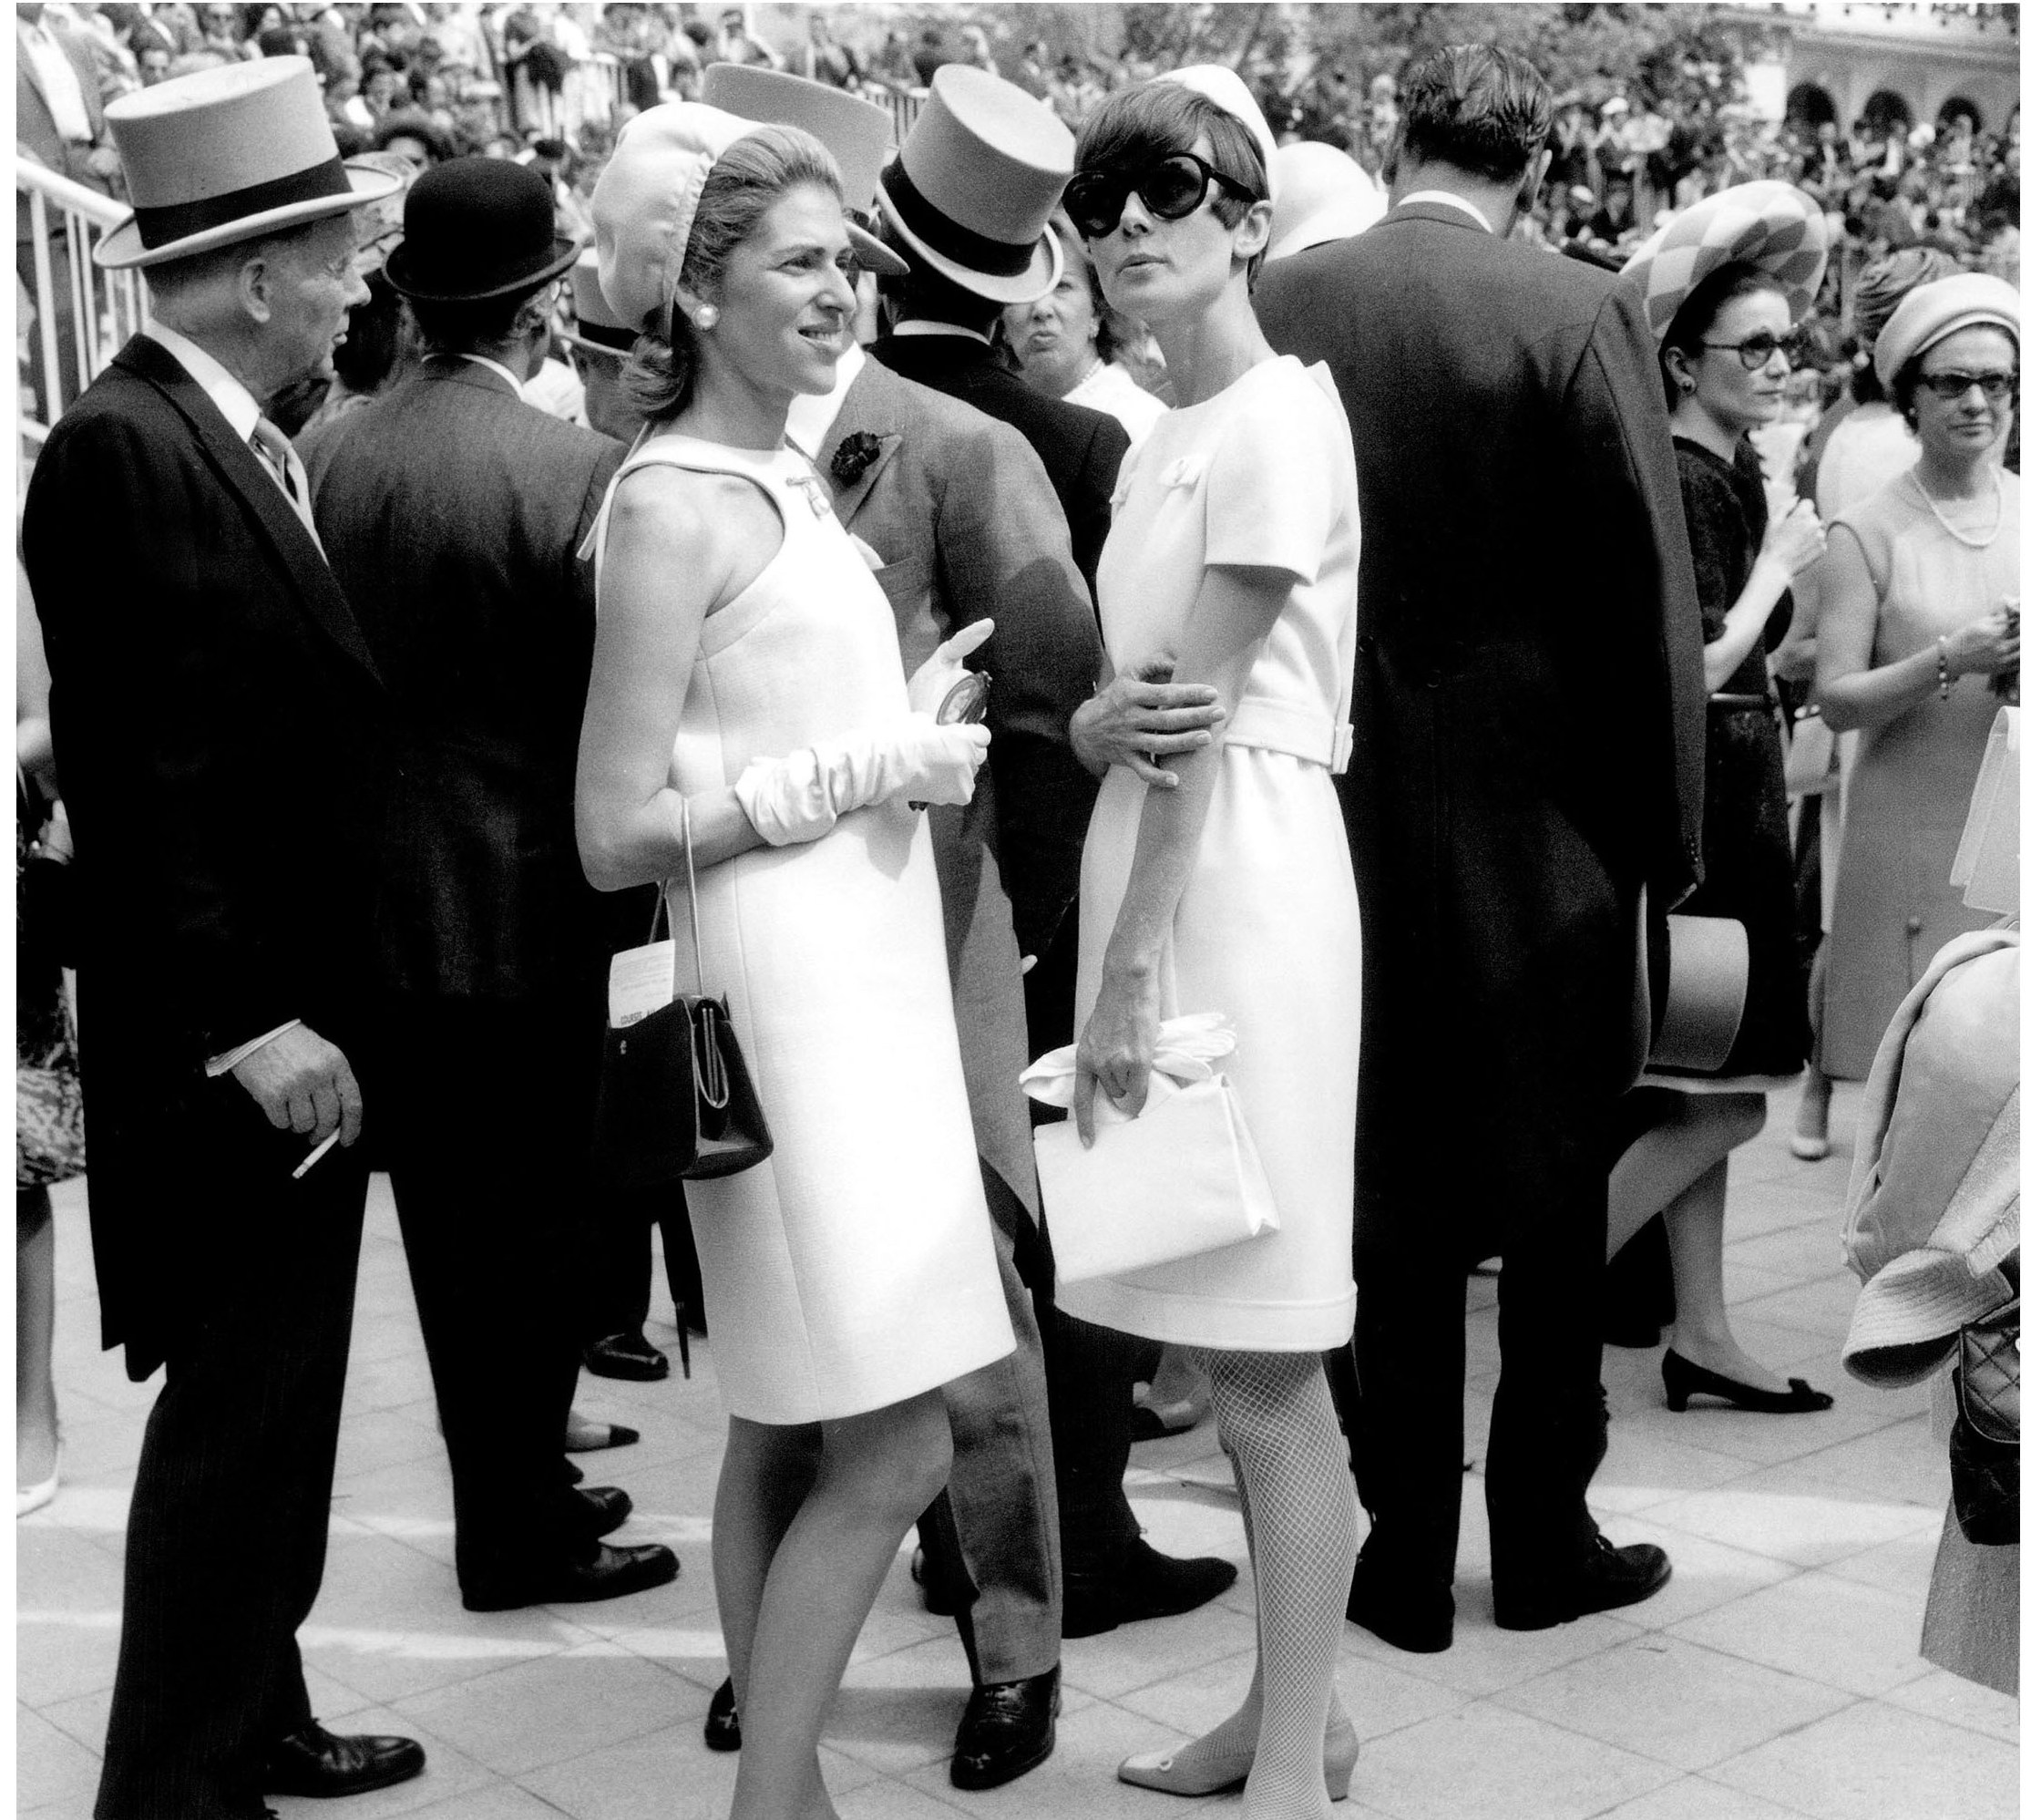 marie-hc3a9lc3a8ne-de-rothschild-left-becoming-the-queen-of-sixties-french-society-everett.jpg